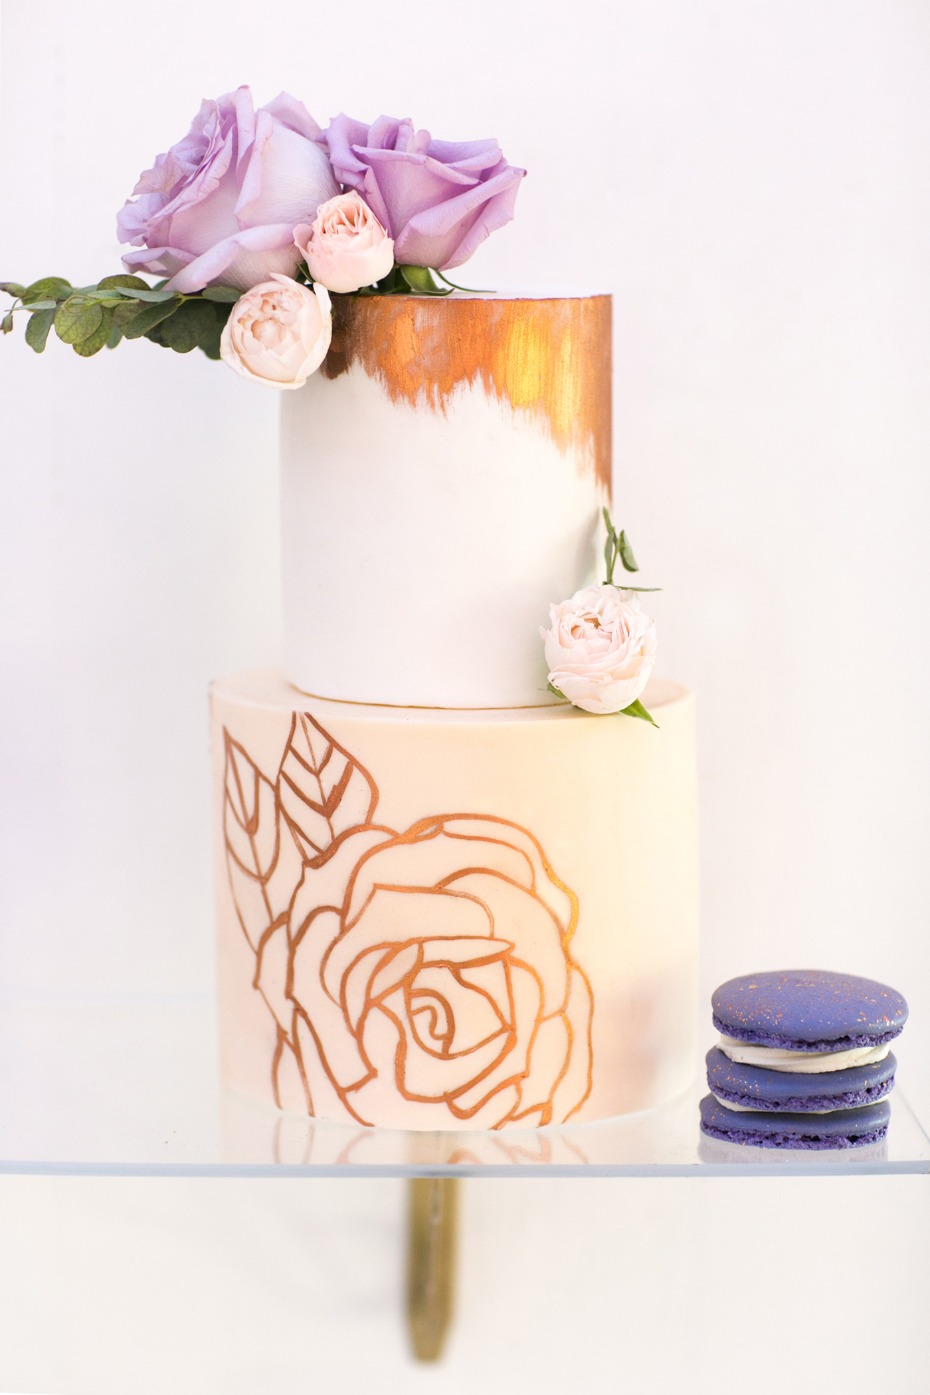 rose painted wedding cake